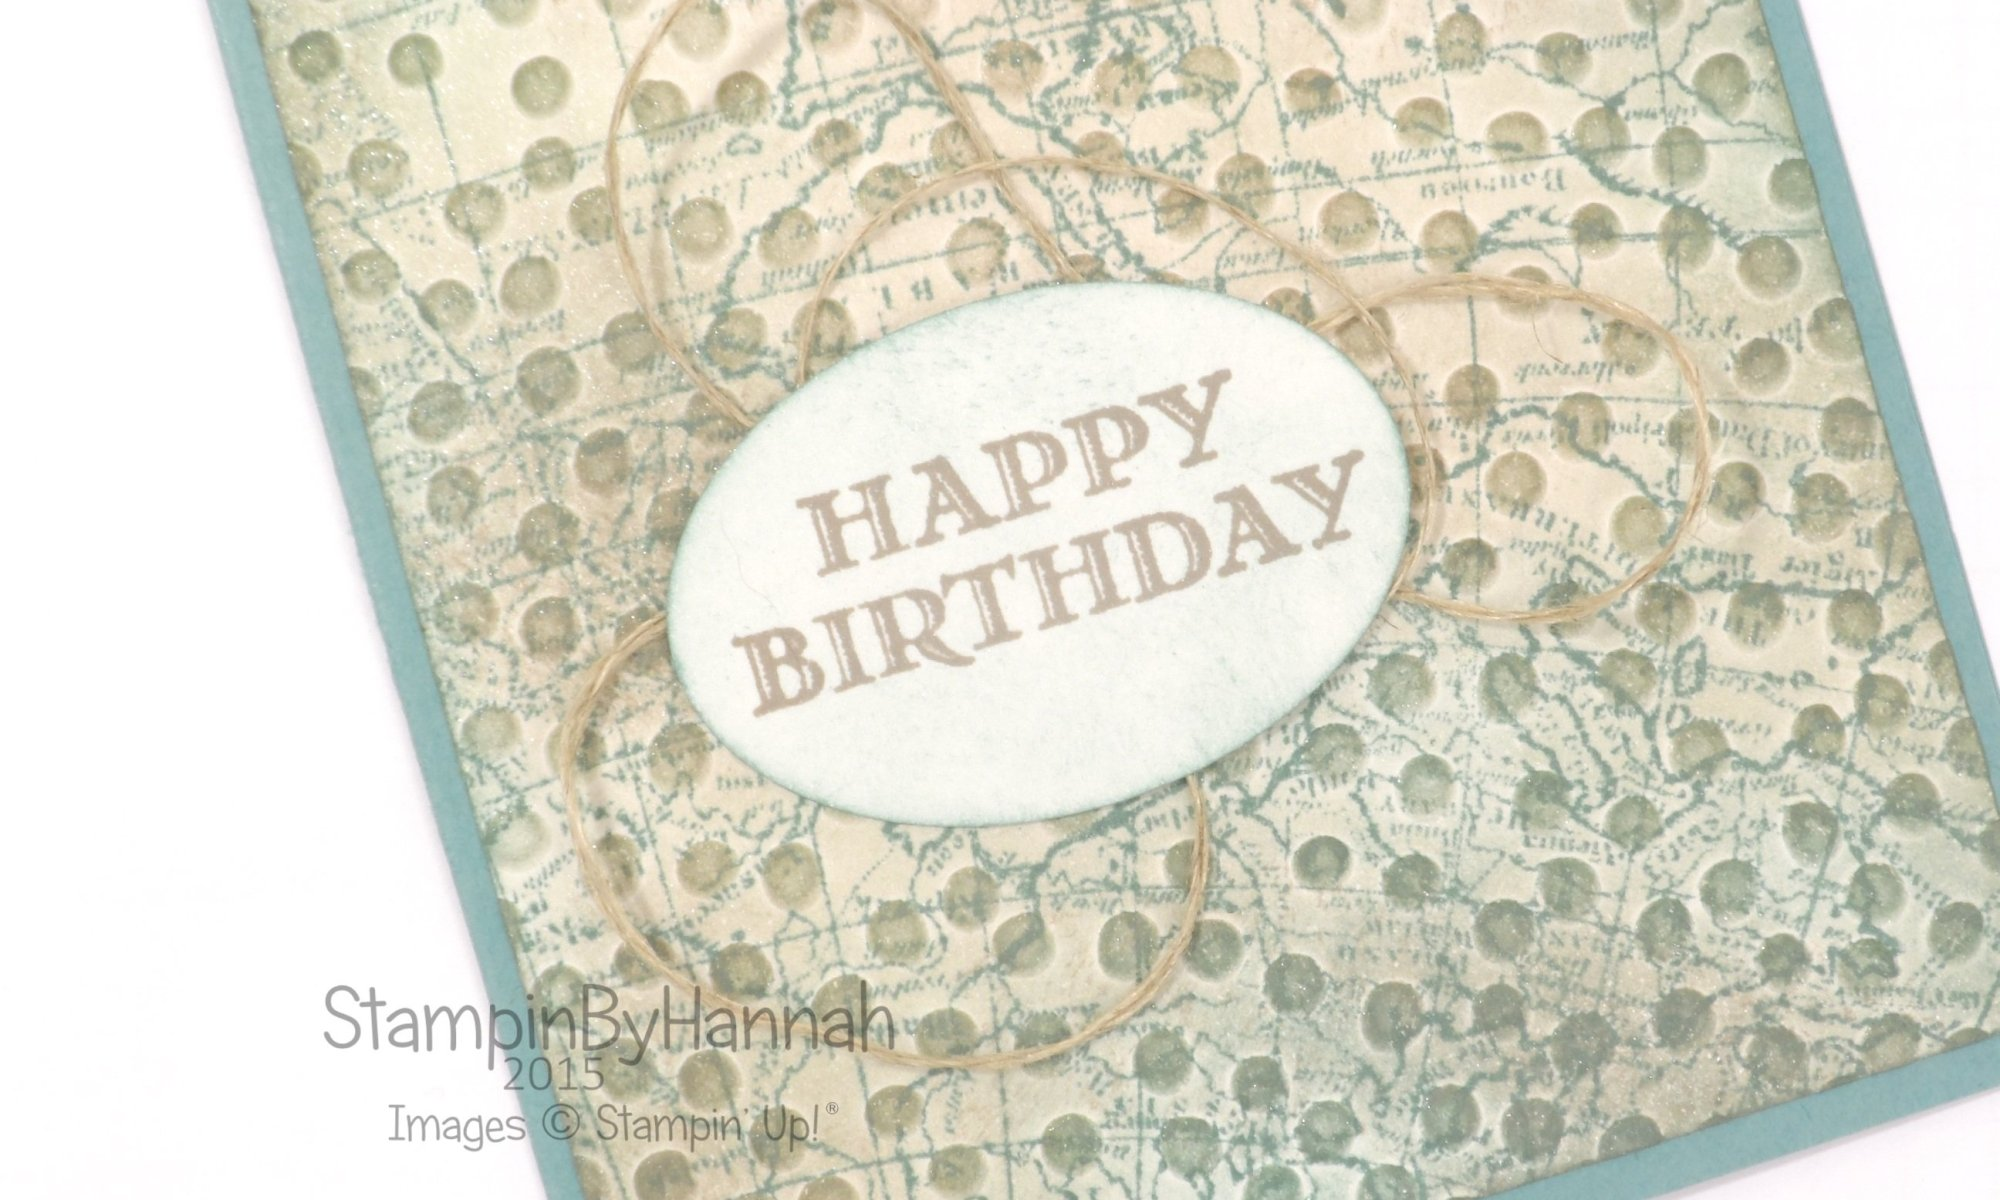 Stampin' Up! UK male birthday card